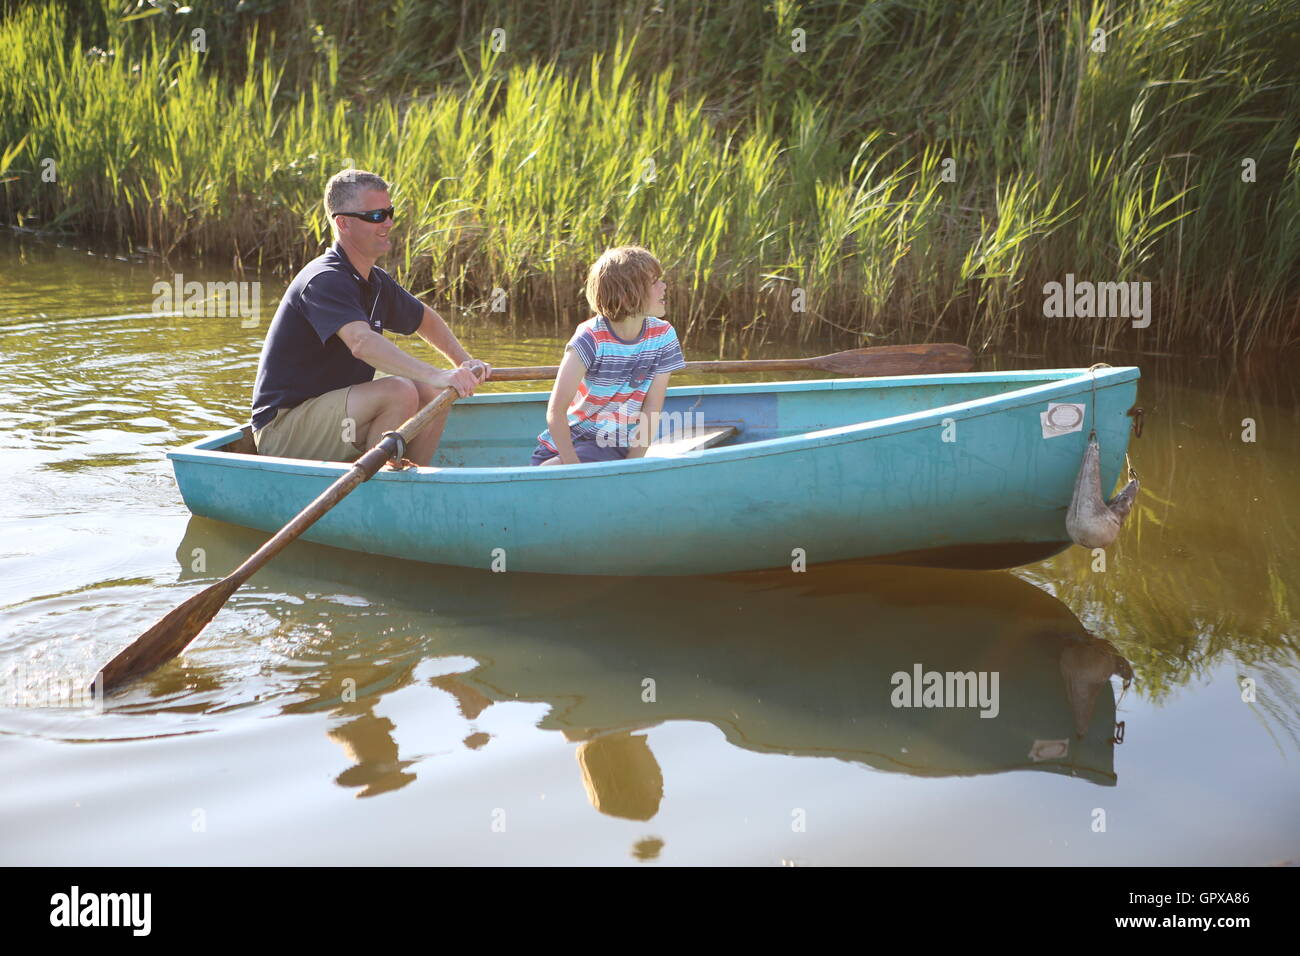 Man and child in rowing boat Norfolk broads UK - Stock Image